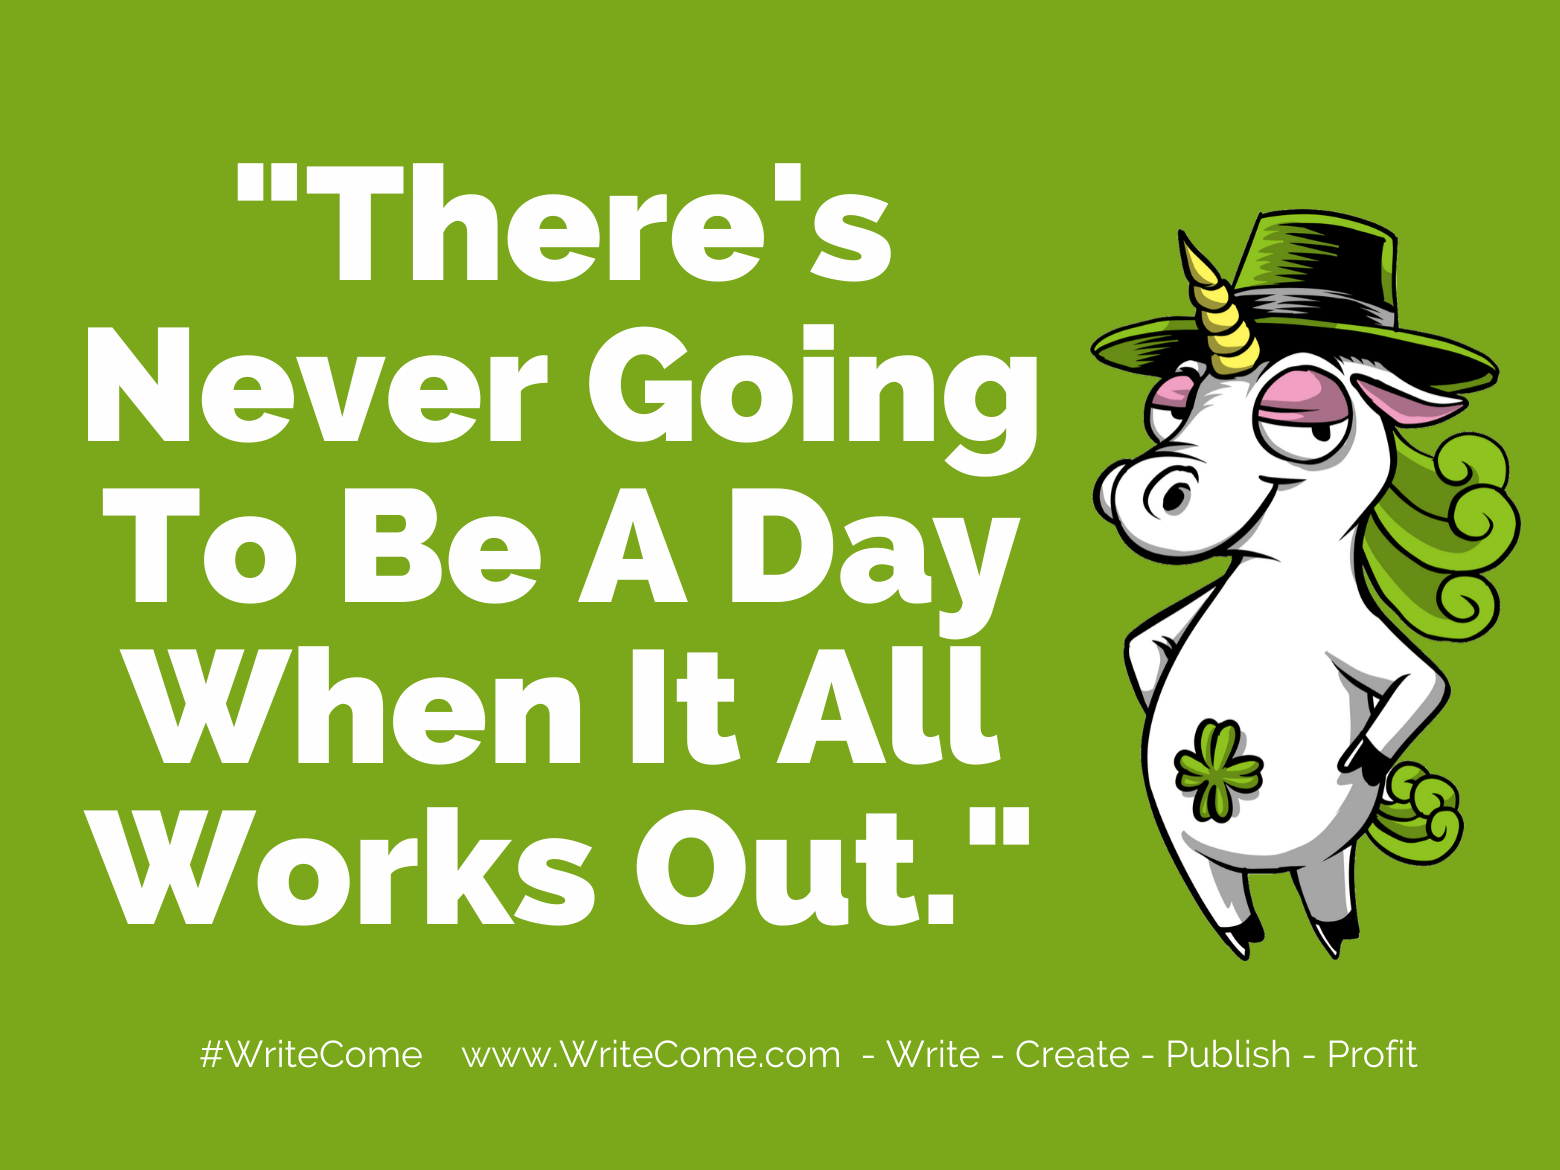 There's never going to be a day when it all works out.